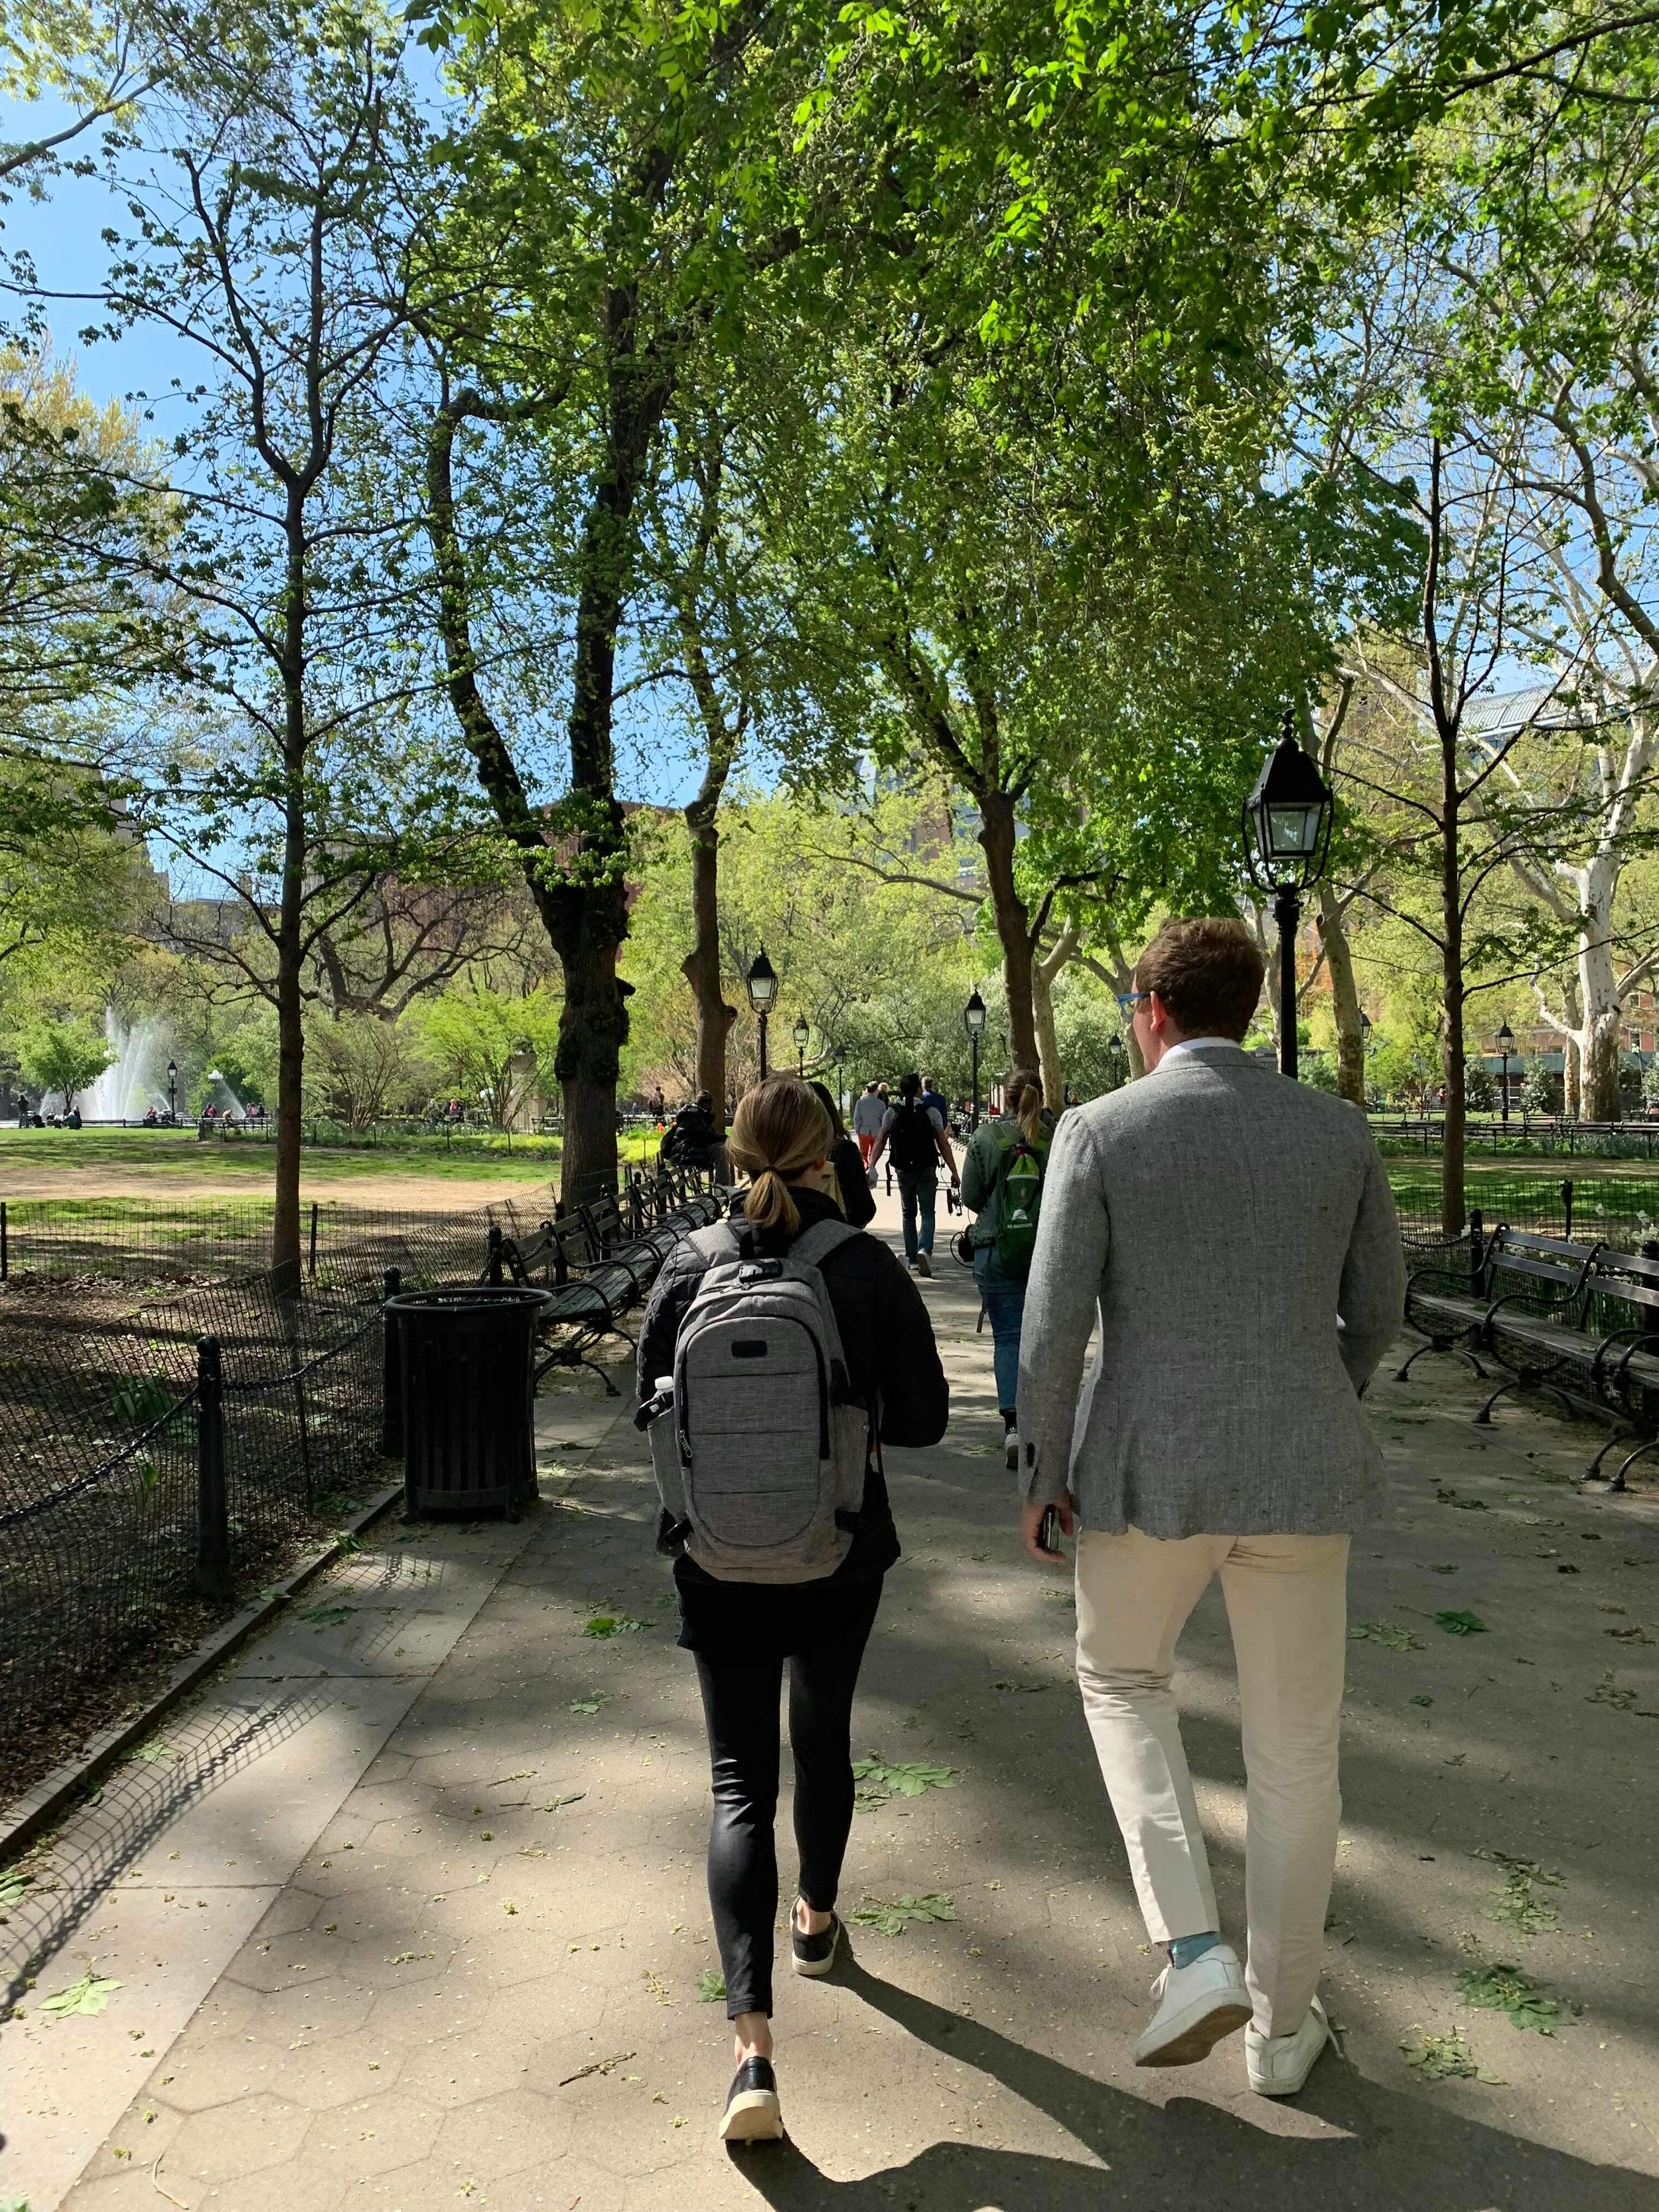 Not much better than a stroll through Washington Square Park on a nice Spring day!